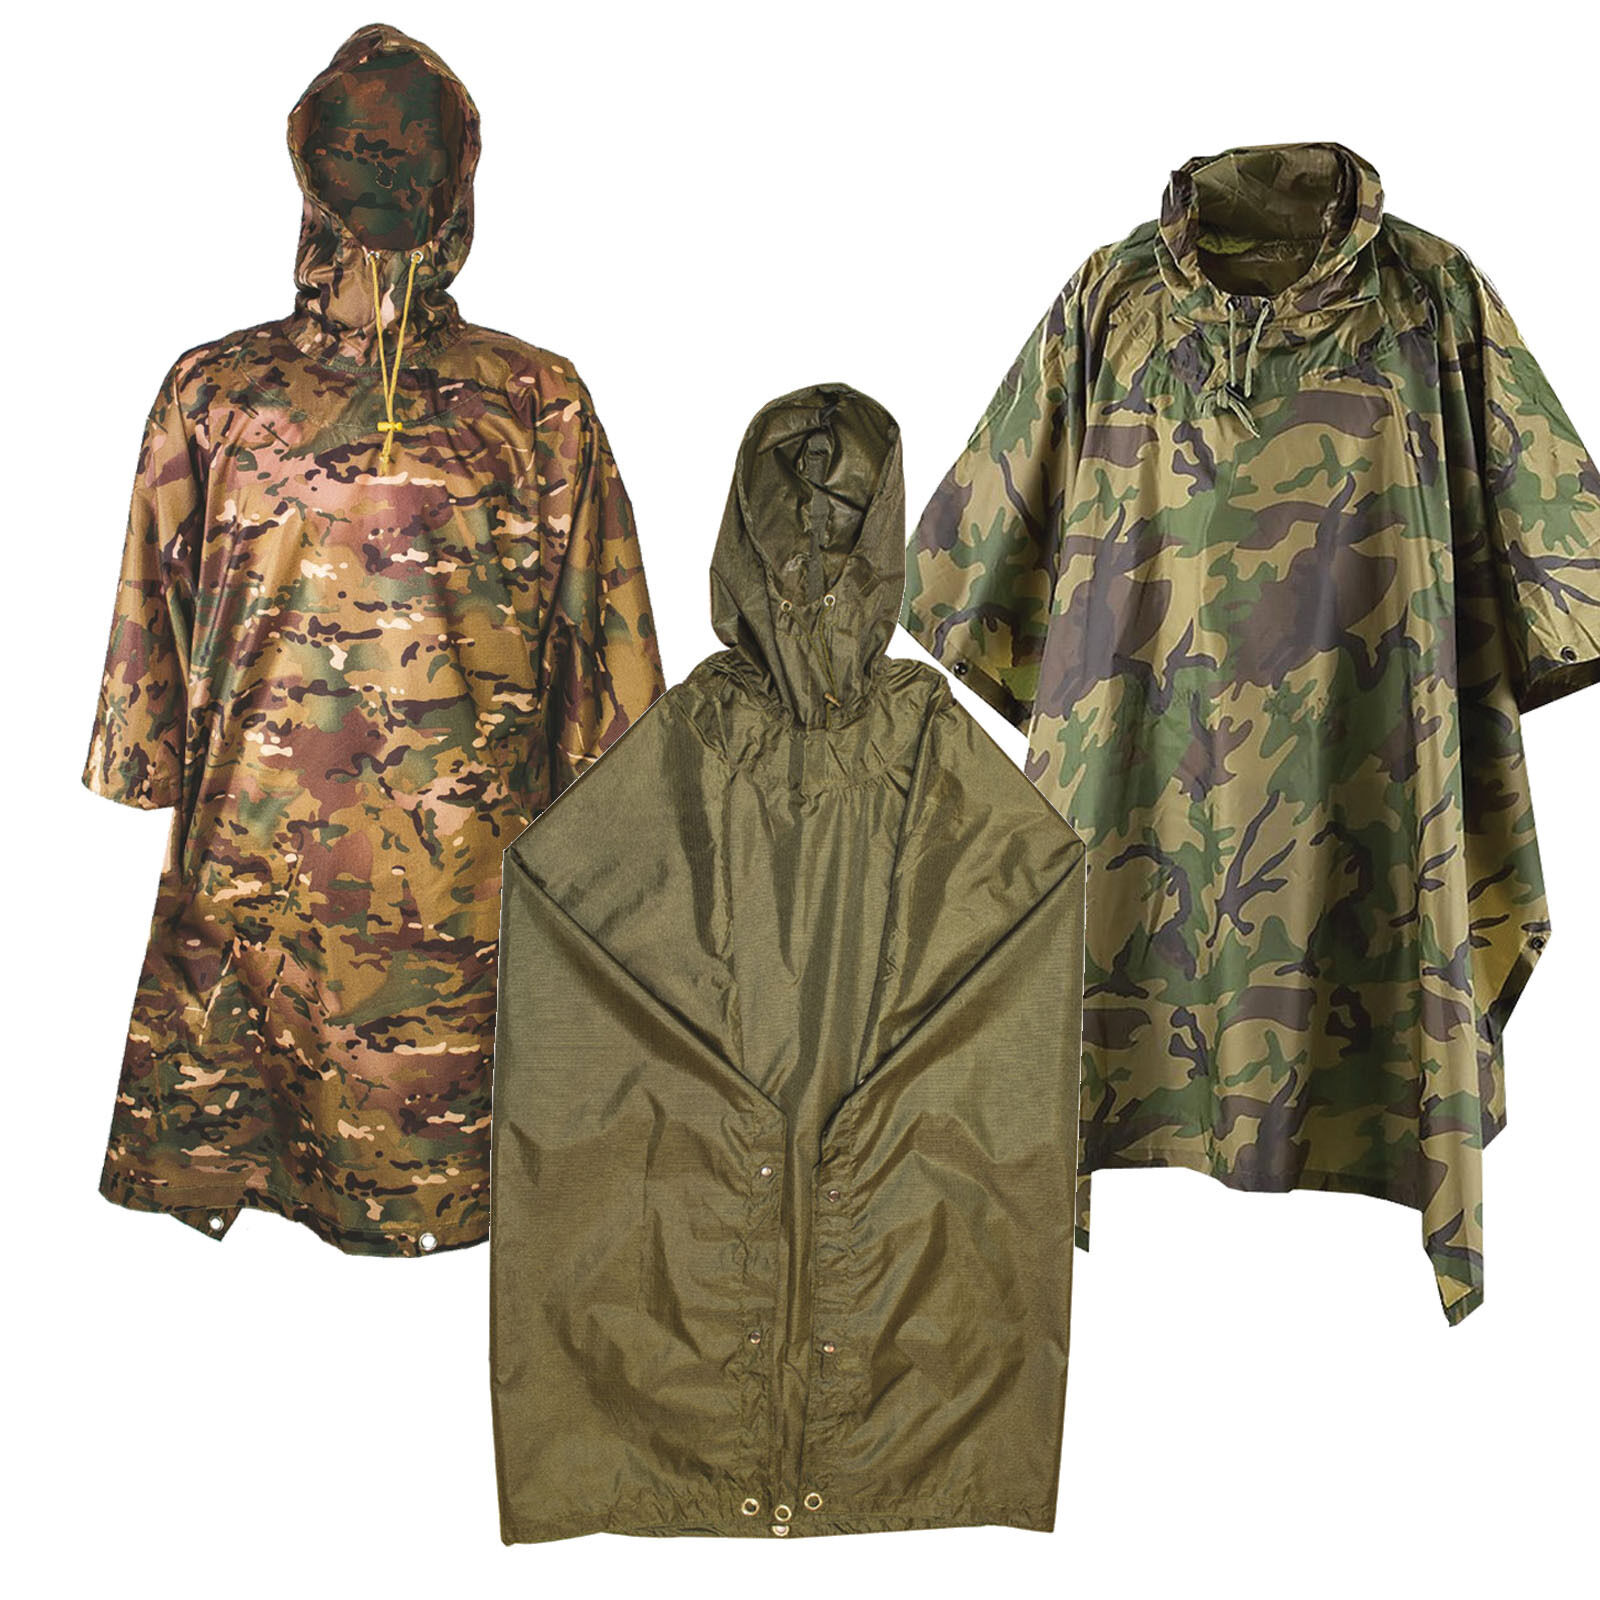 Ripstop Adventure Poncho/ Or Emergency Shelter HTMC/MTP Camo Olive Army SAS PARA